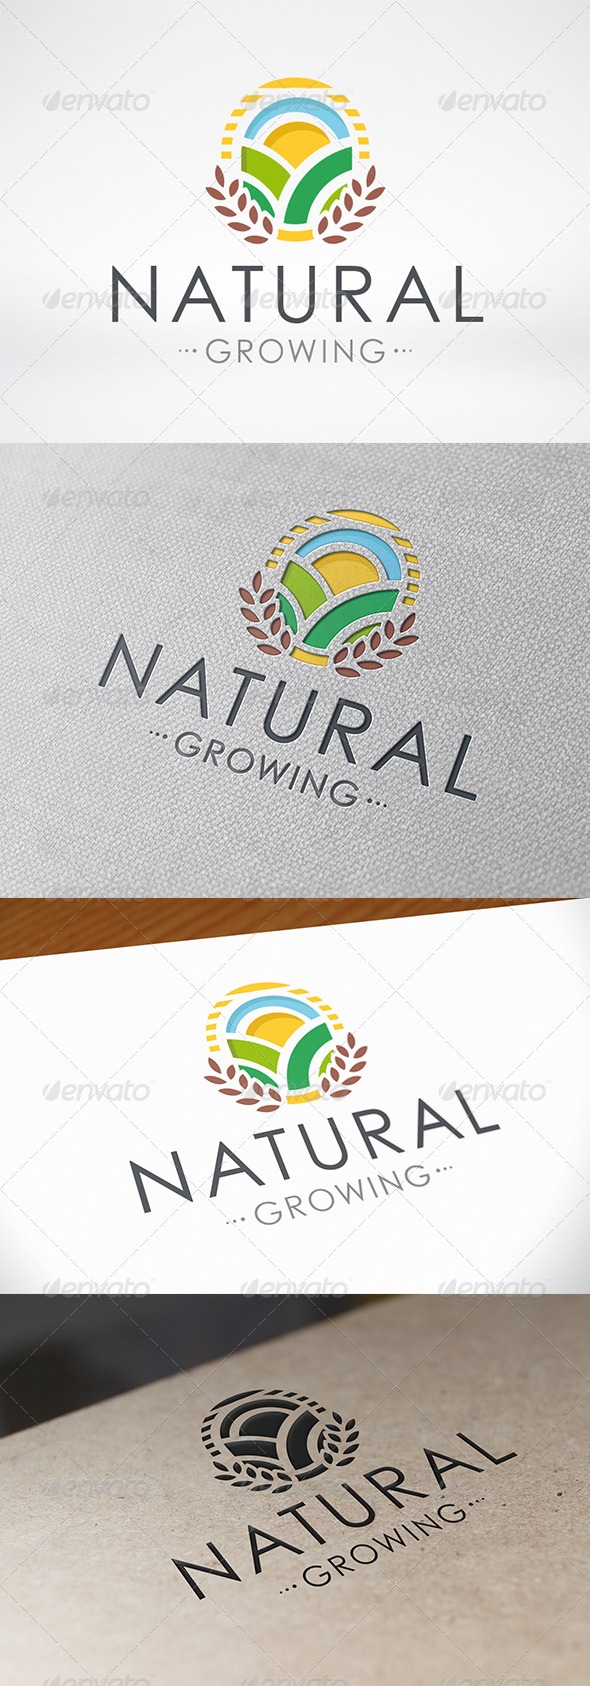 Natural Growing Logo - Crests Logo Templates